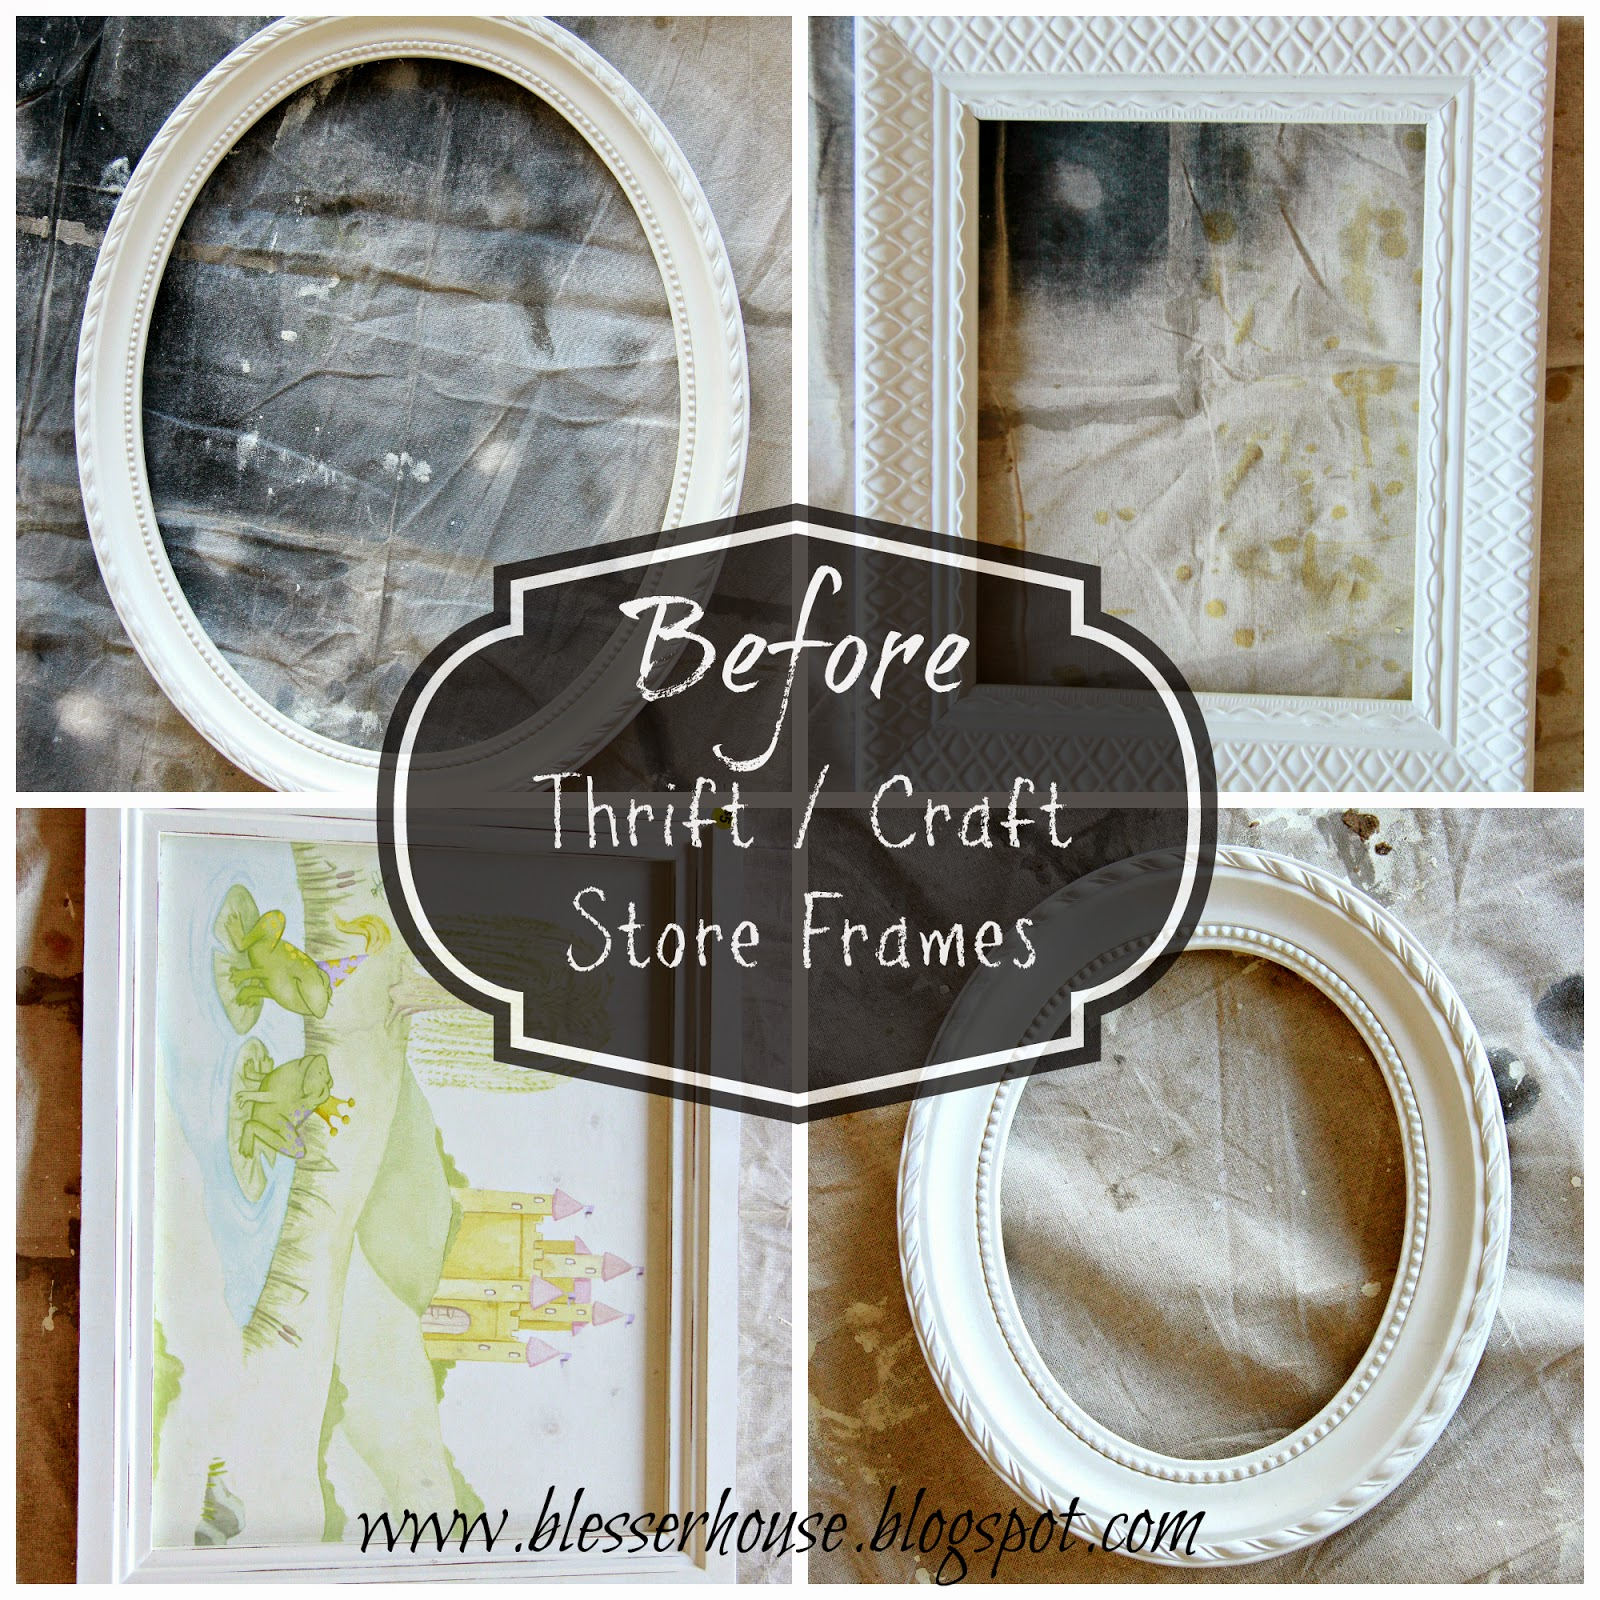 I Always Check The Frame Section Of Thrift S When Visit Chose 6 Total To Distress For Our Wall 4 Thrifted And 2 From Hobby Lobby